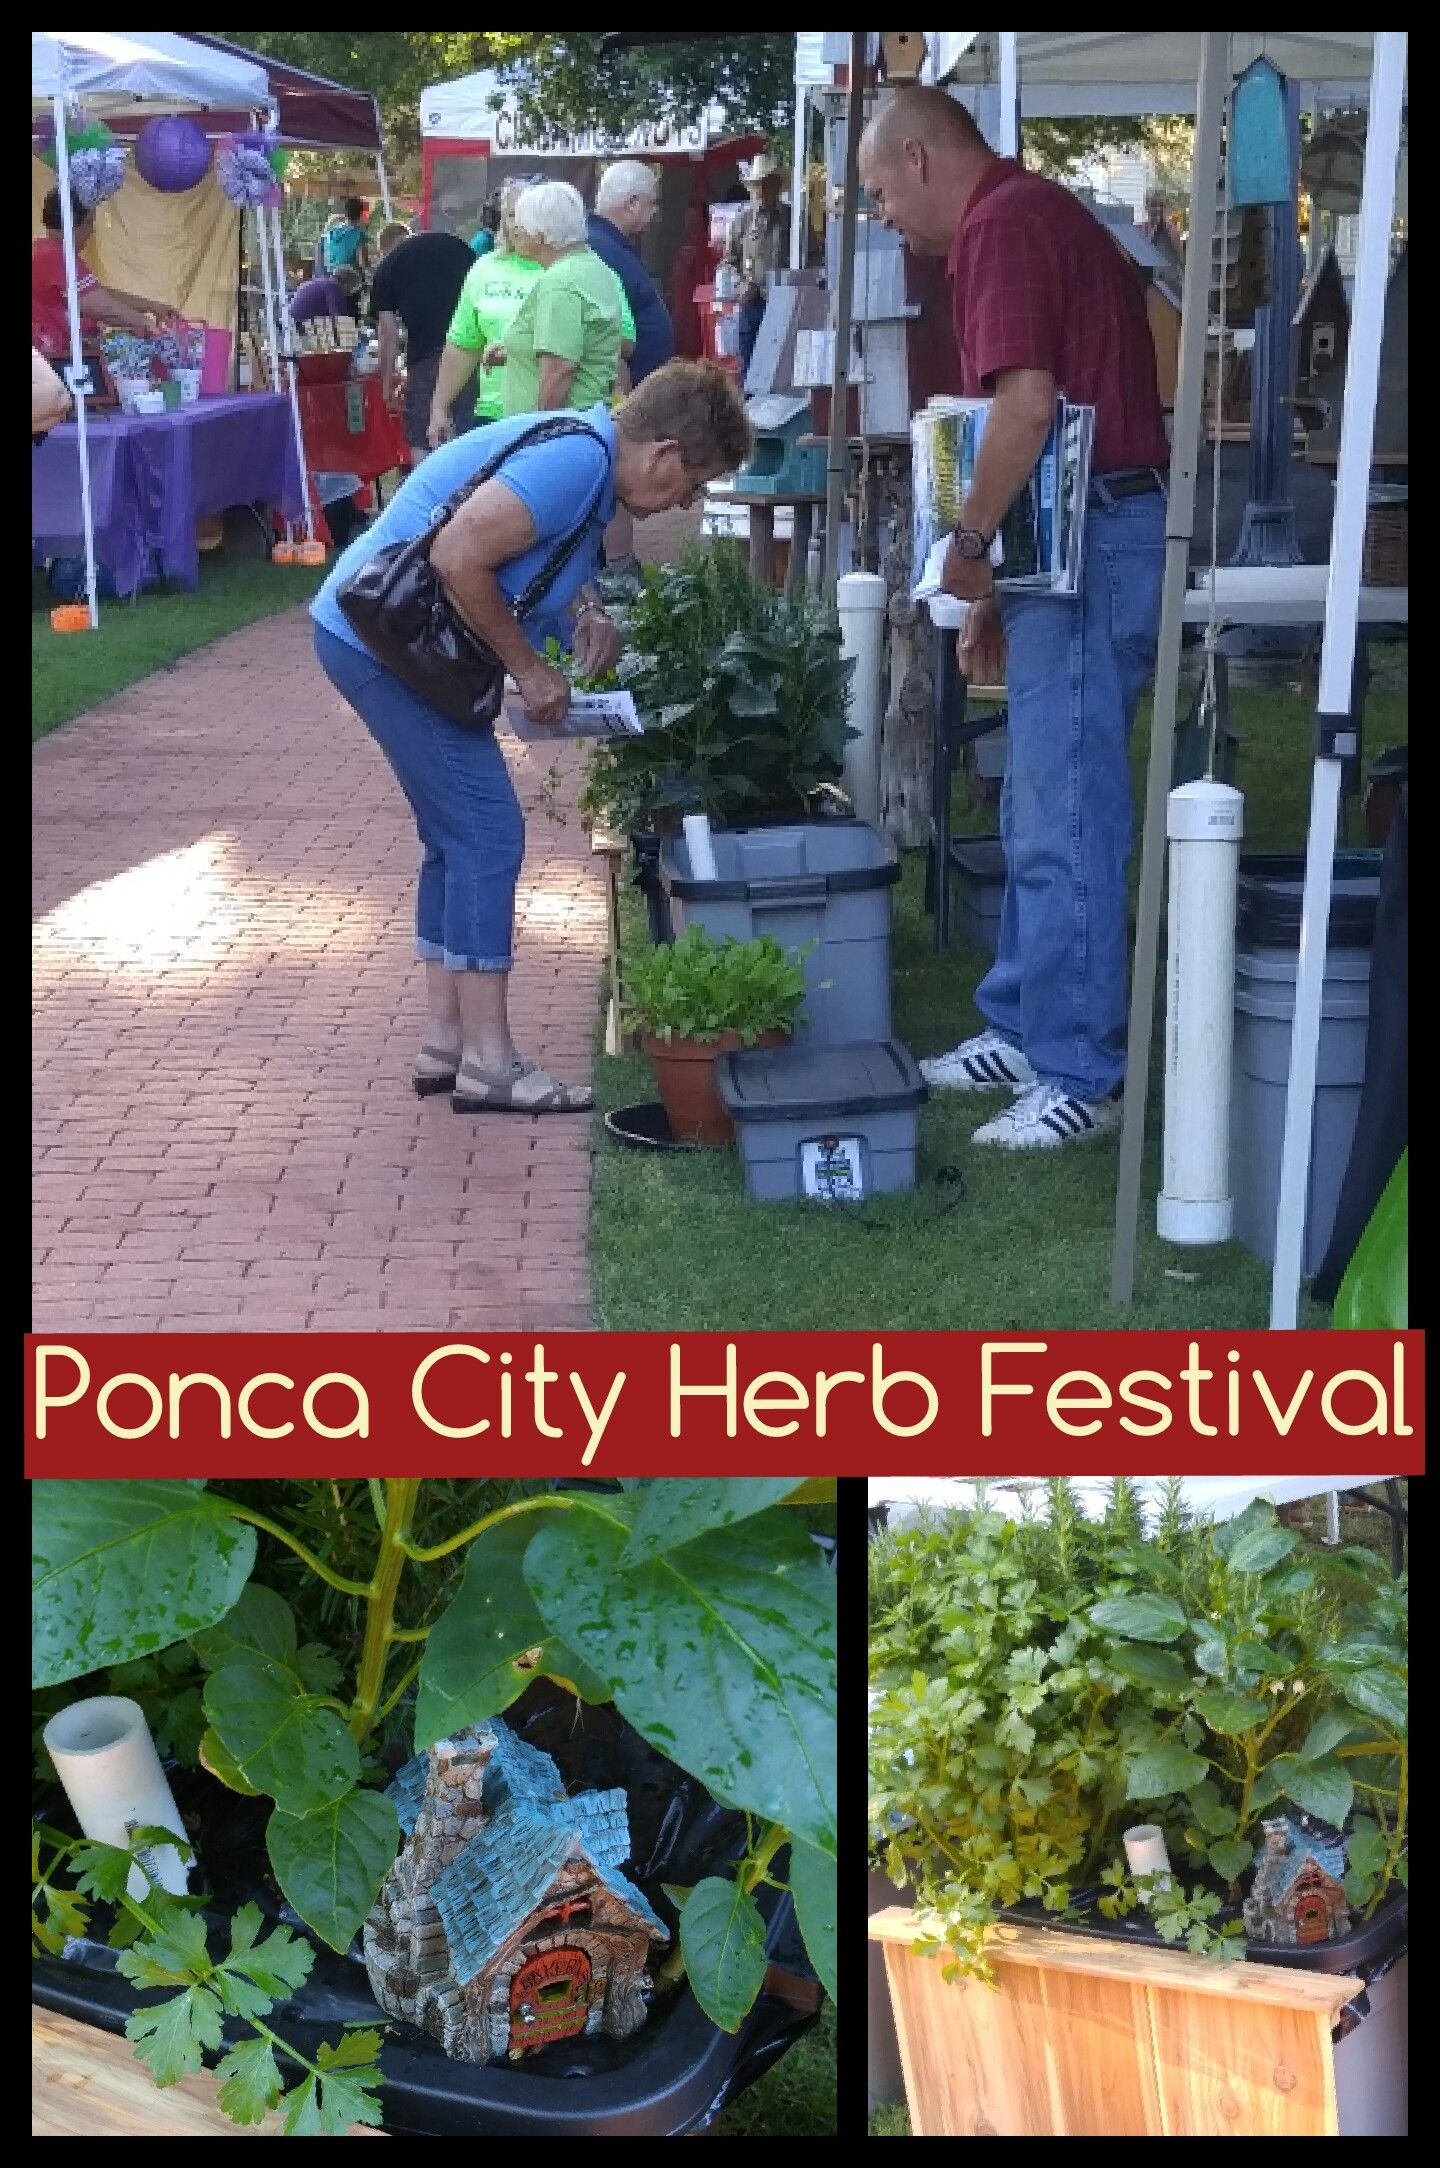 June 5, 2016 We participated in the Ponca City Herb Festival this year. It was a great time with lots of unique vendors.